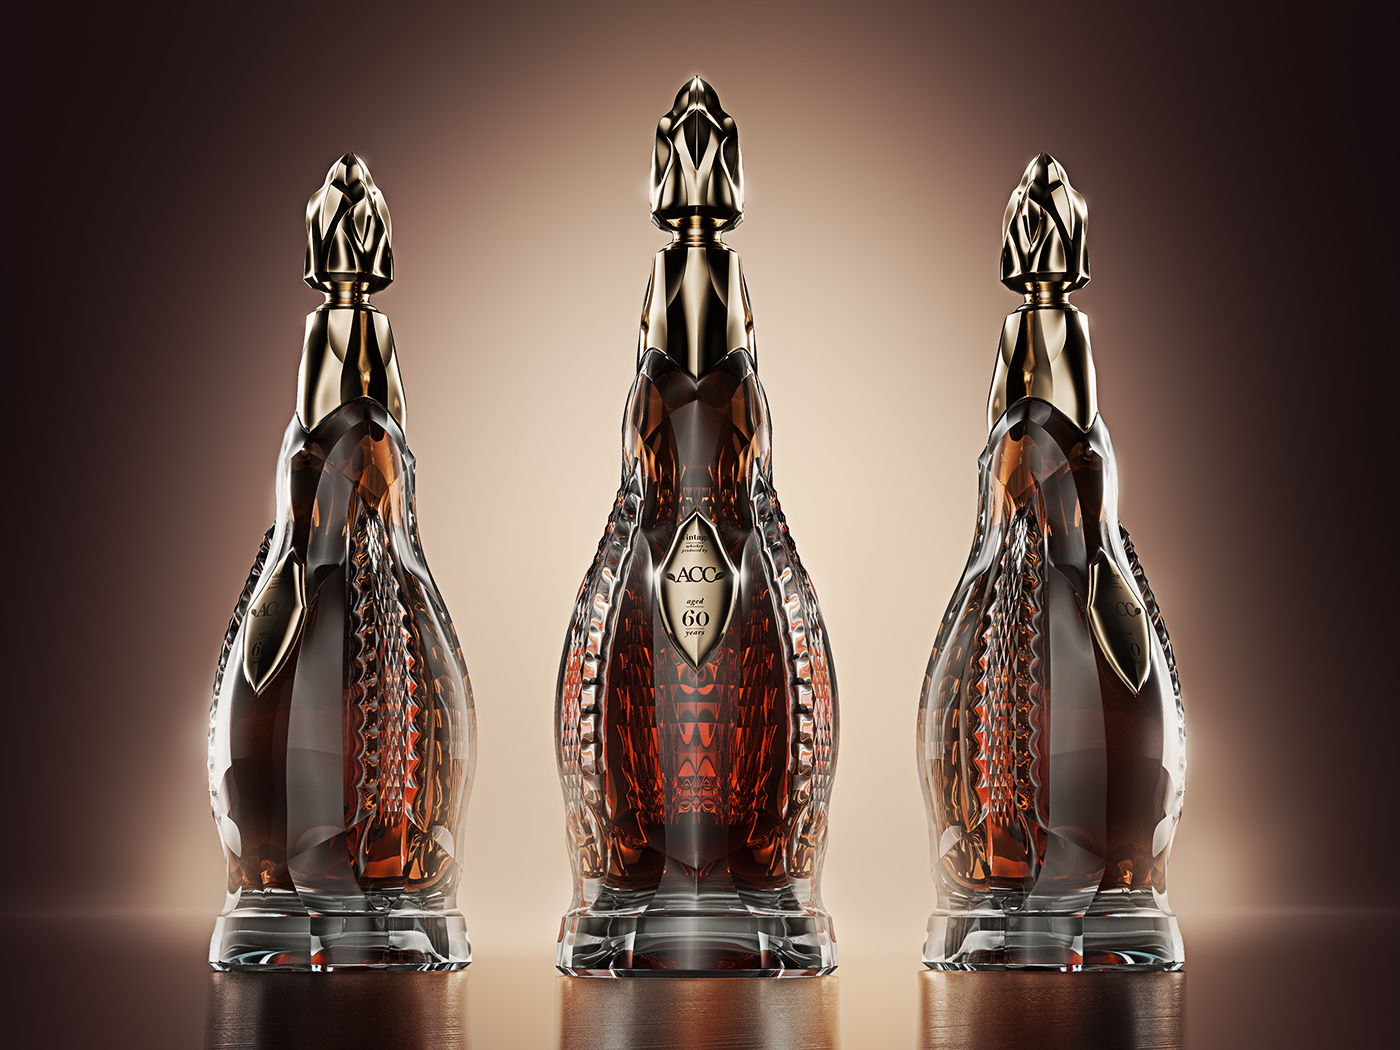 Luxury whisky bottle design for  Connoisseur Group / ACC  is a modified  Supreme Cognac Bouteille design . The bottle will enter production in the glassworks Rogaska in Slovenia in 2018. Volume of the bottle will be 1 liter and whisky will be in the range of 60 - 70 years old.   Bottle will be available for the private clients of Connoisseur Group / ACC.